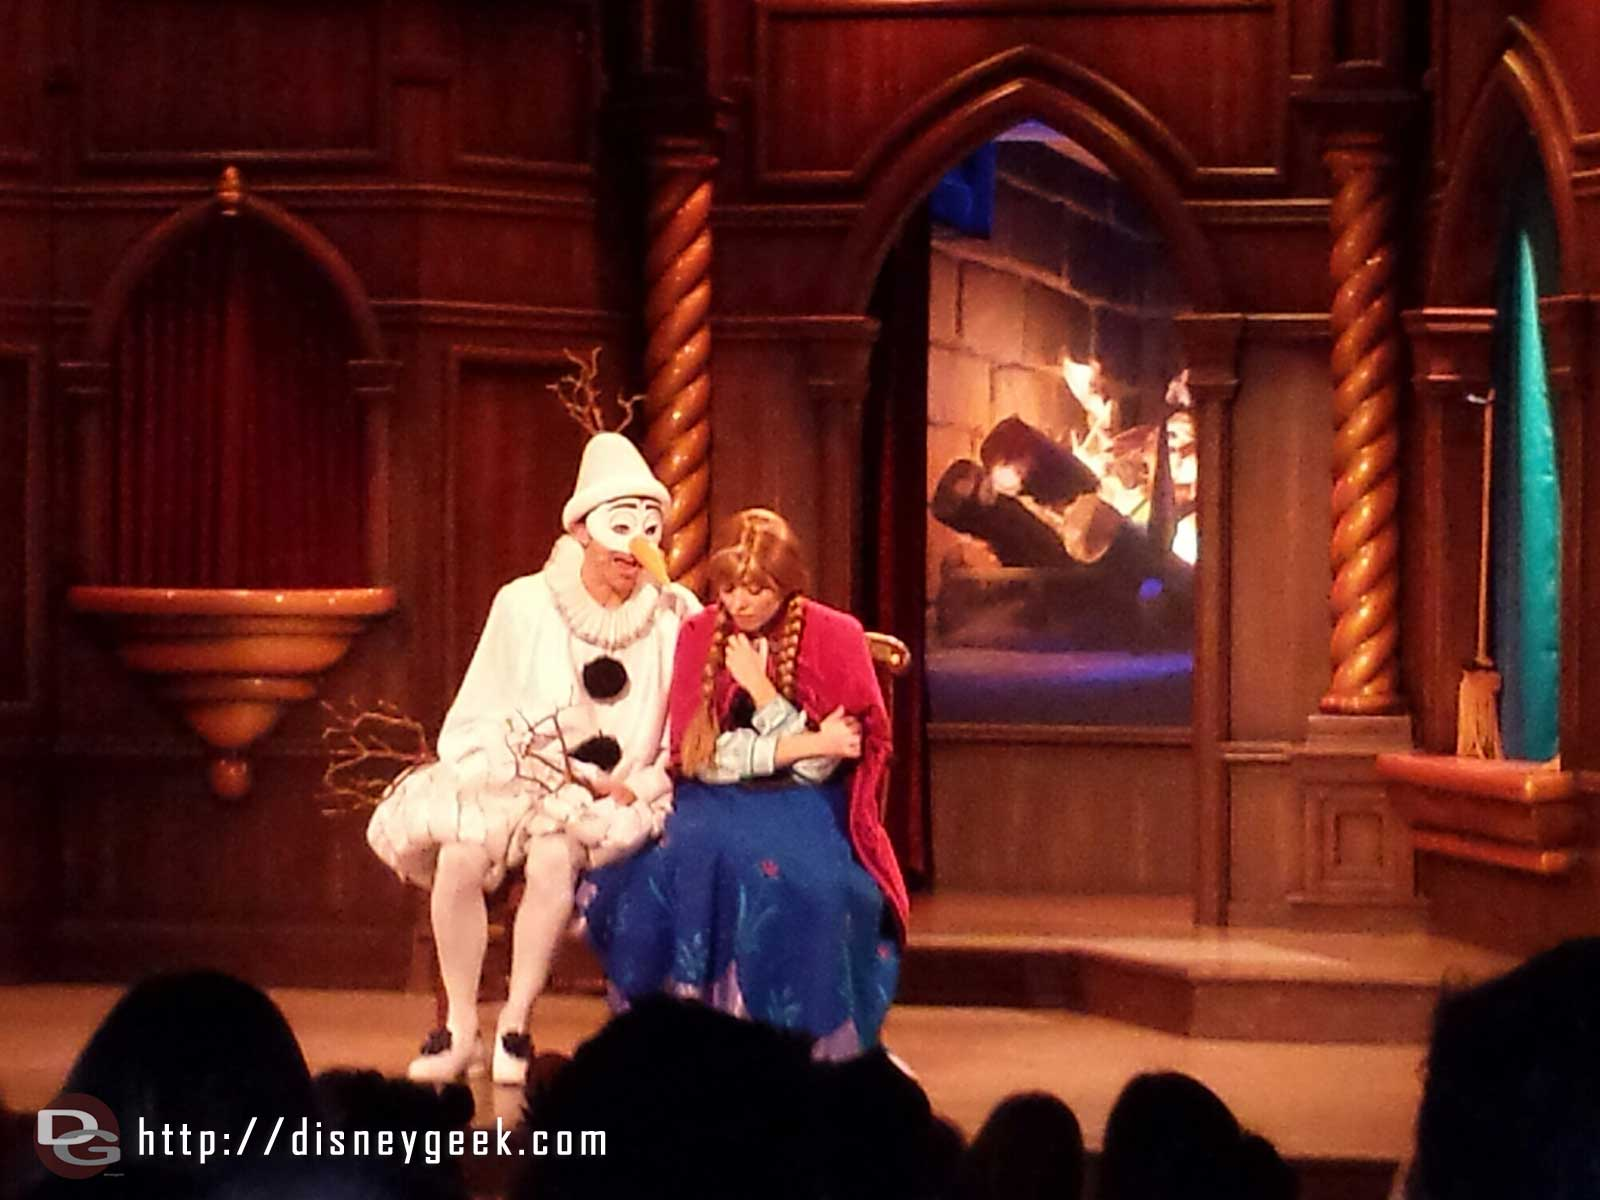 Olaf & Anna in the Royal Theatre performance of #Frozen